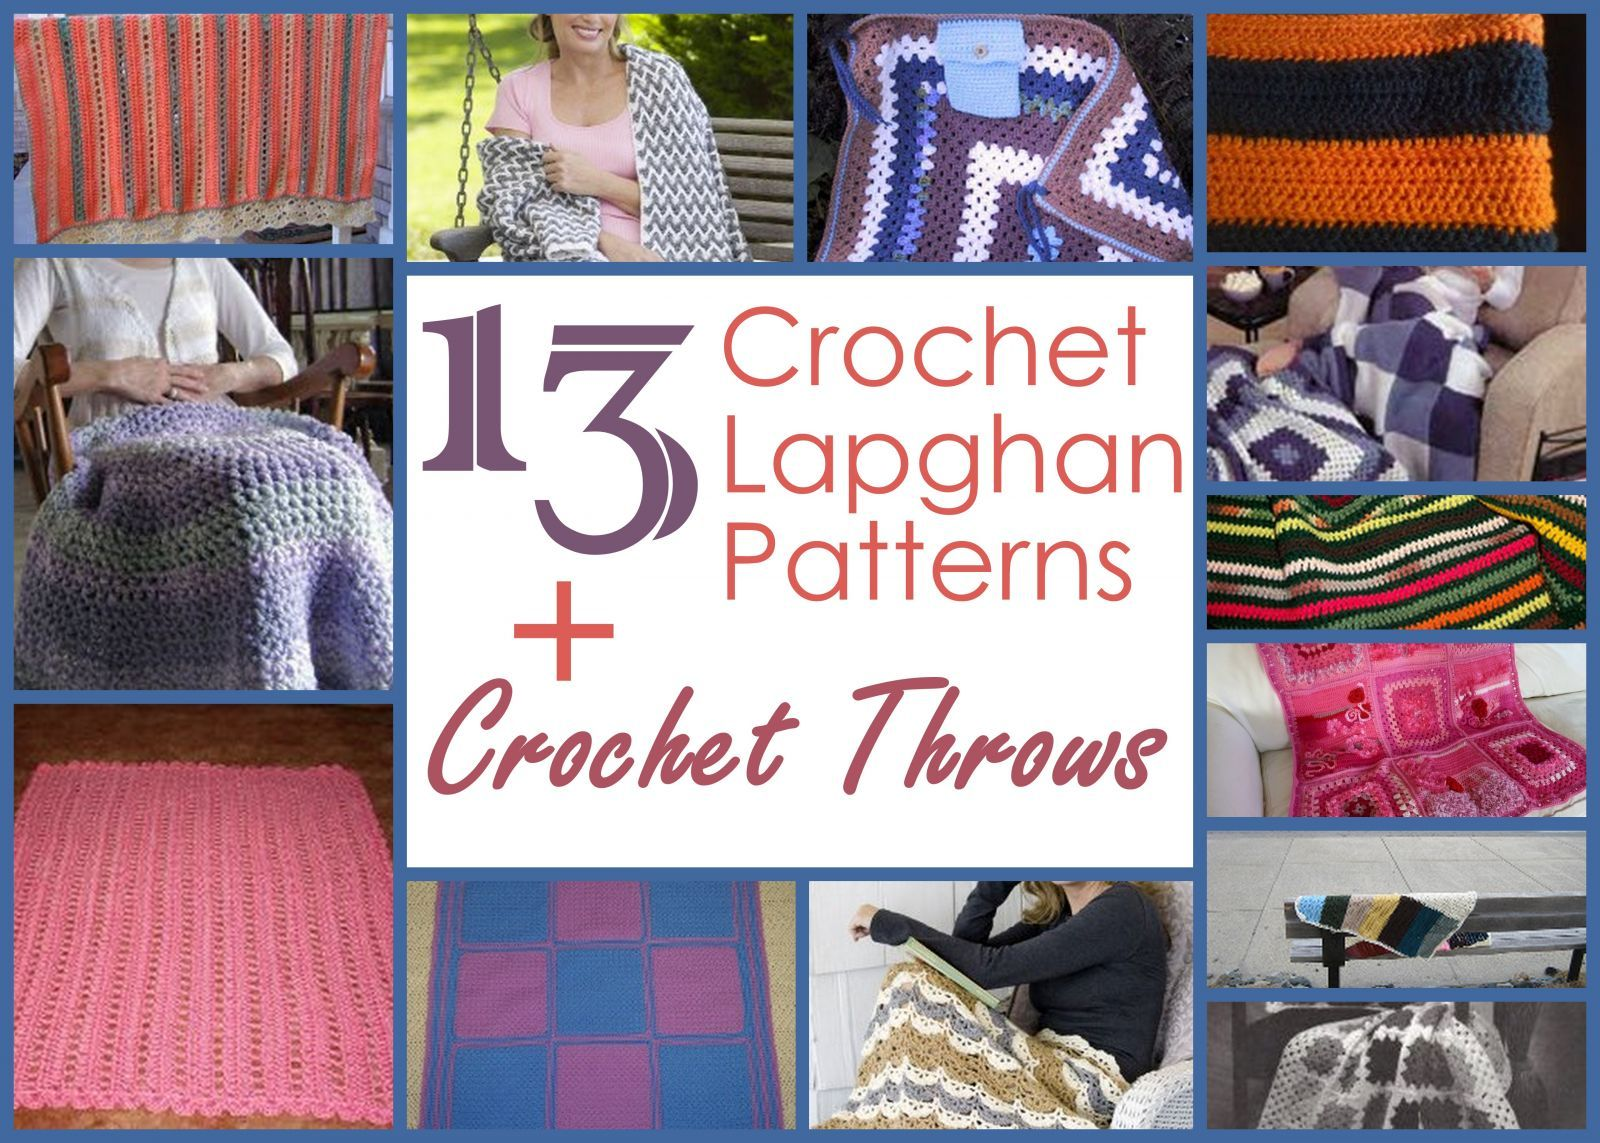 13 crochet lapghan patterns free crochet afghan patterns 13 crochet lapghan patterns bankloansurffo Images